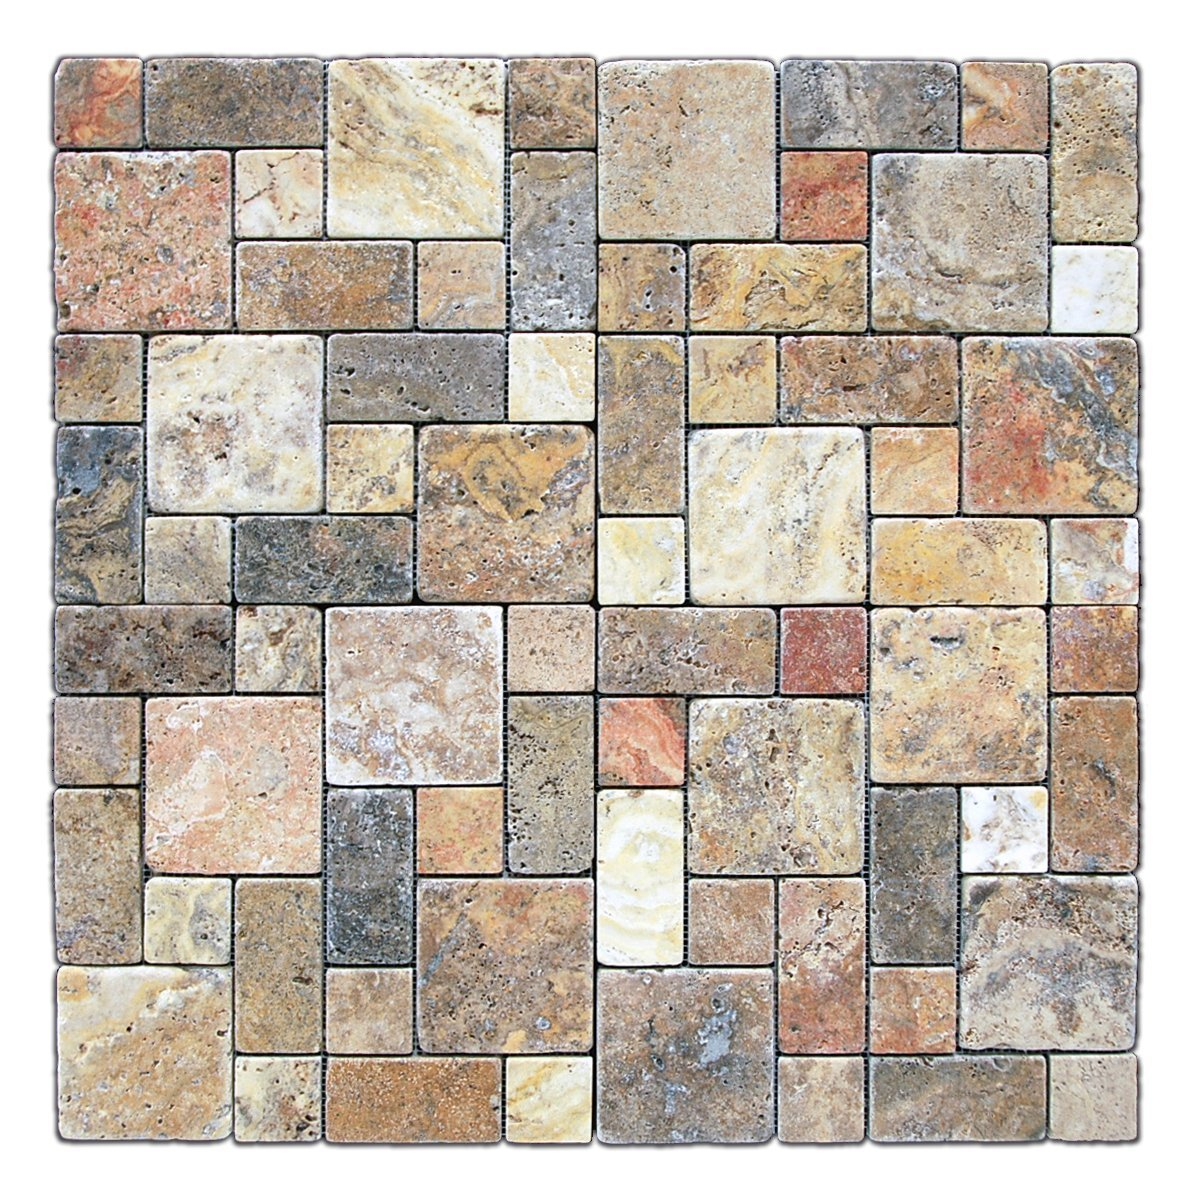 Travertine Tiles The Tile Home Guide